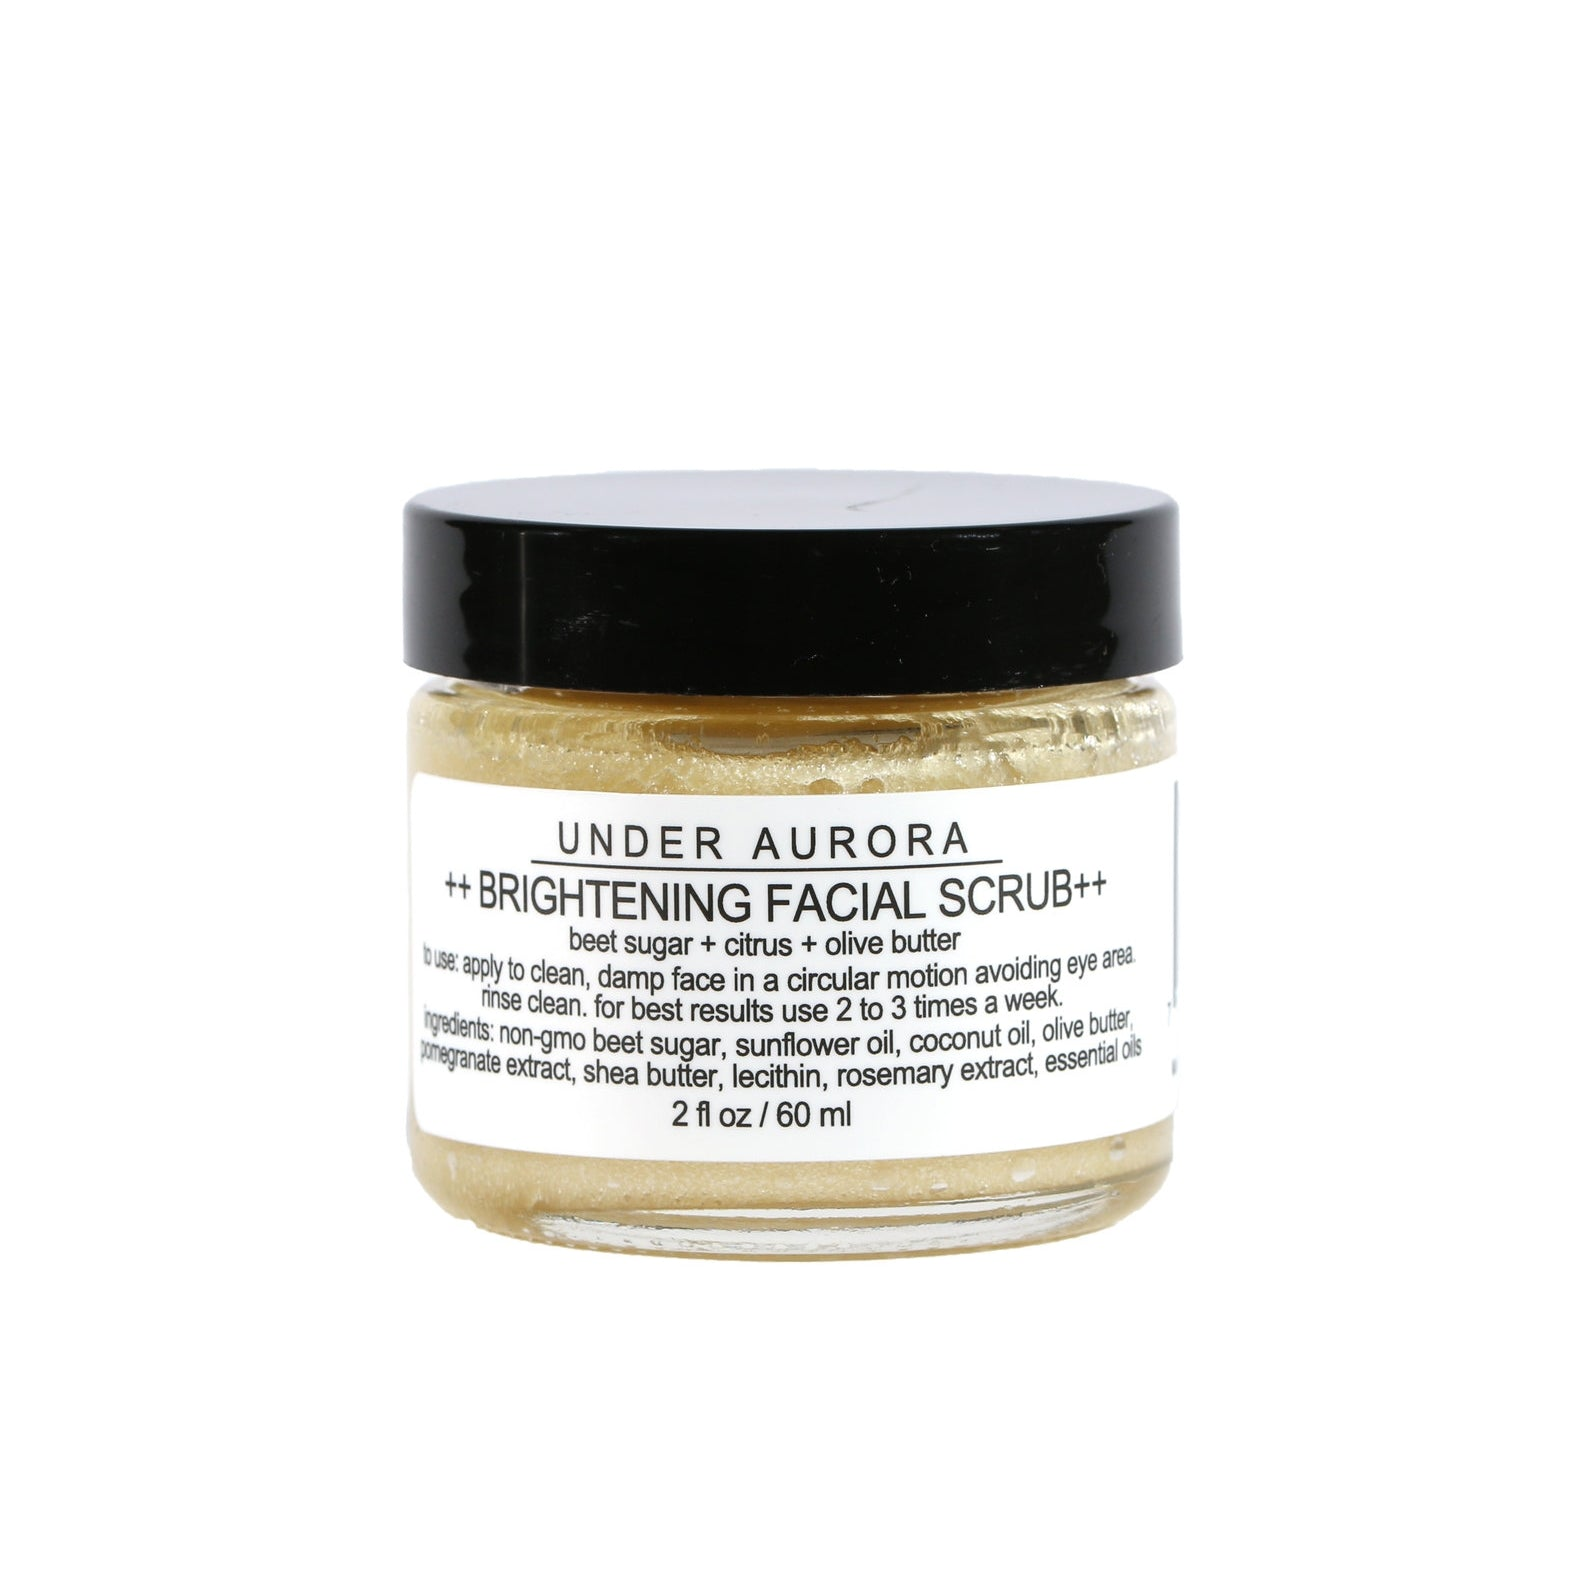 Under Aurora - Brightening Facial Scrub